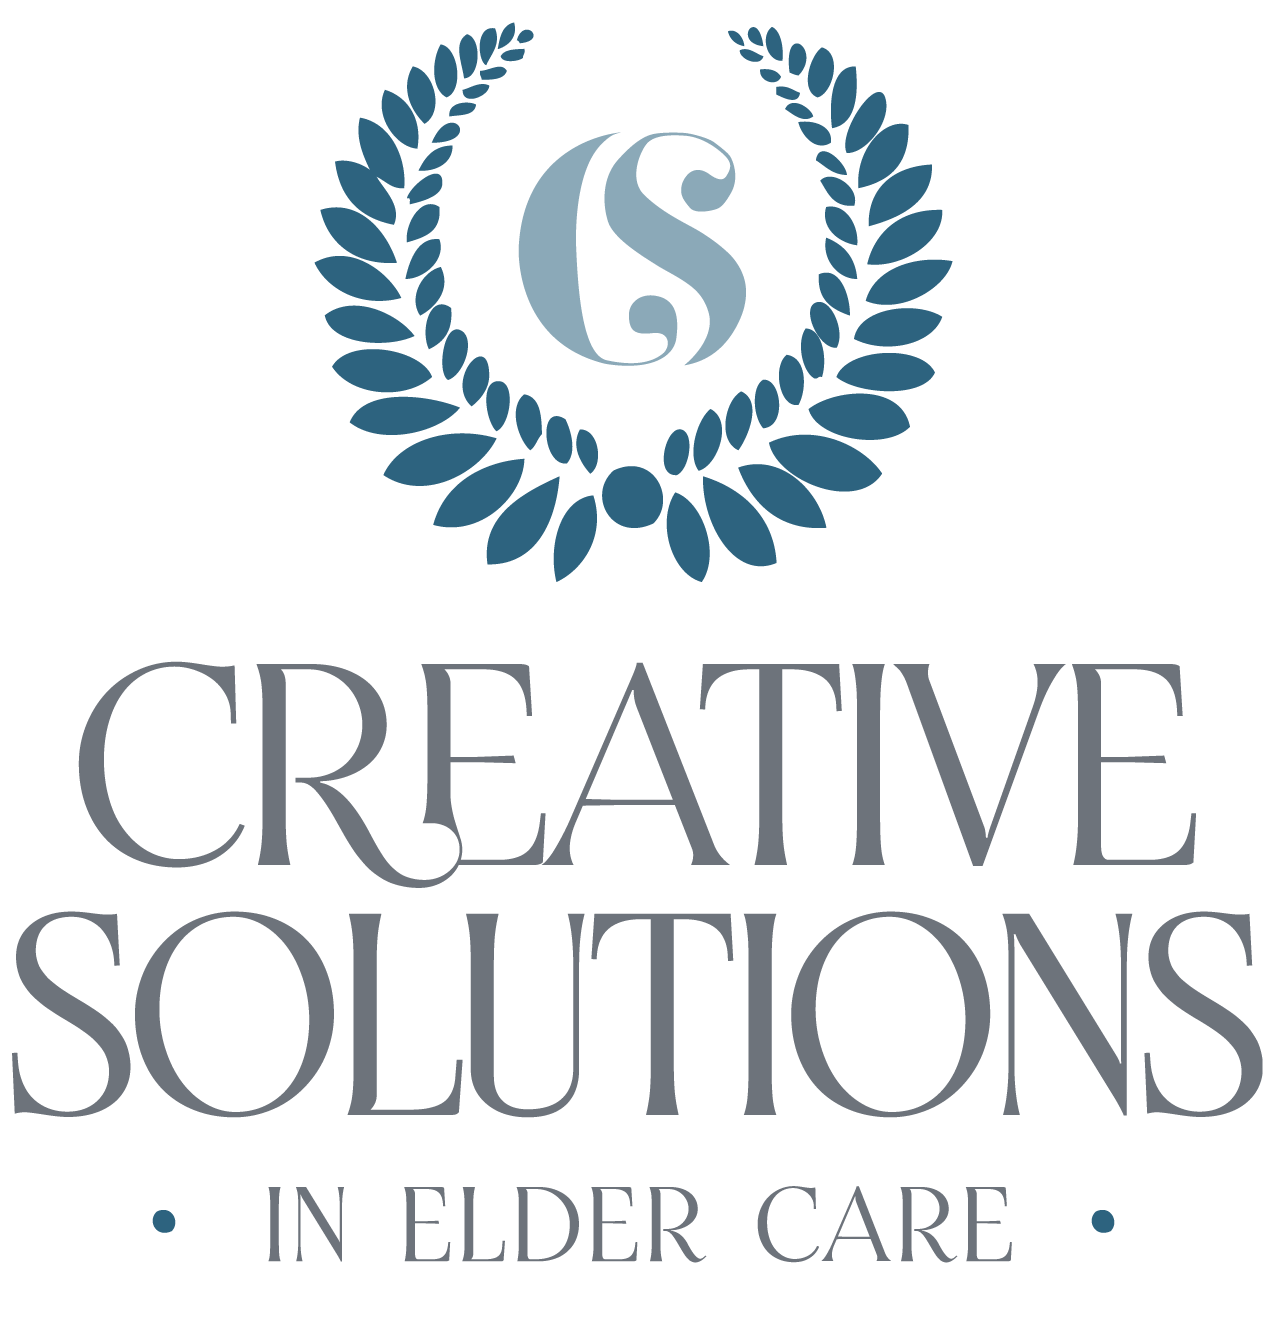 Creative Solutions in Elder Care